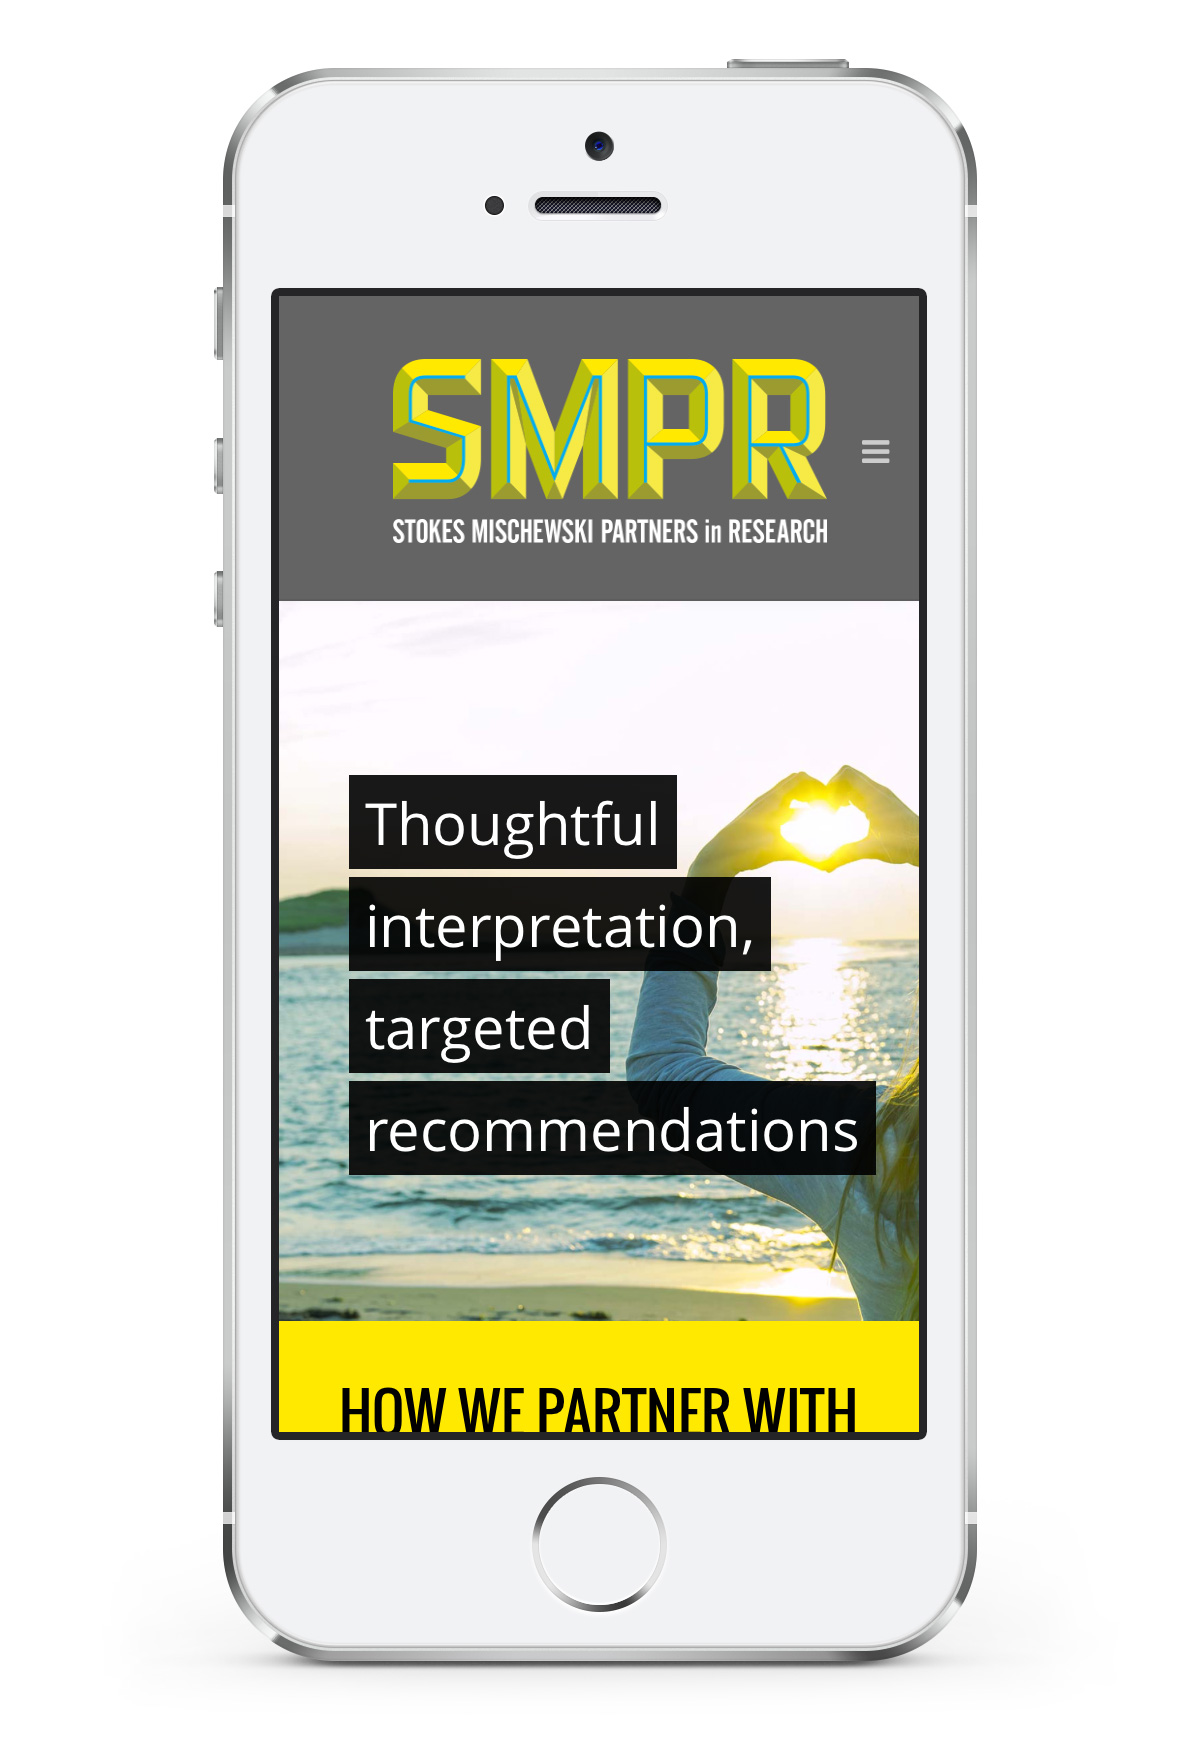 Pic-SMPR-Mobile